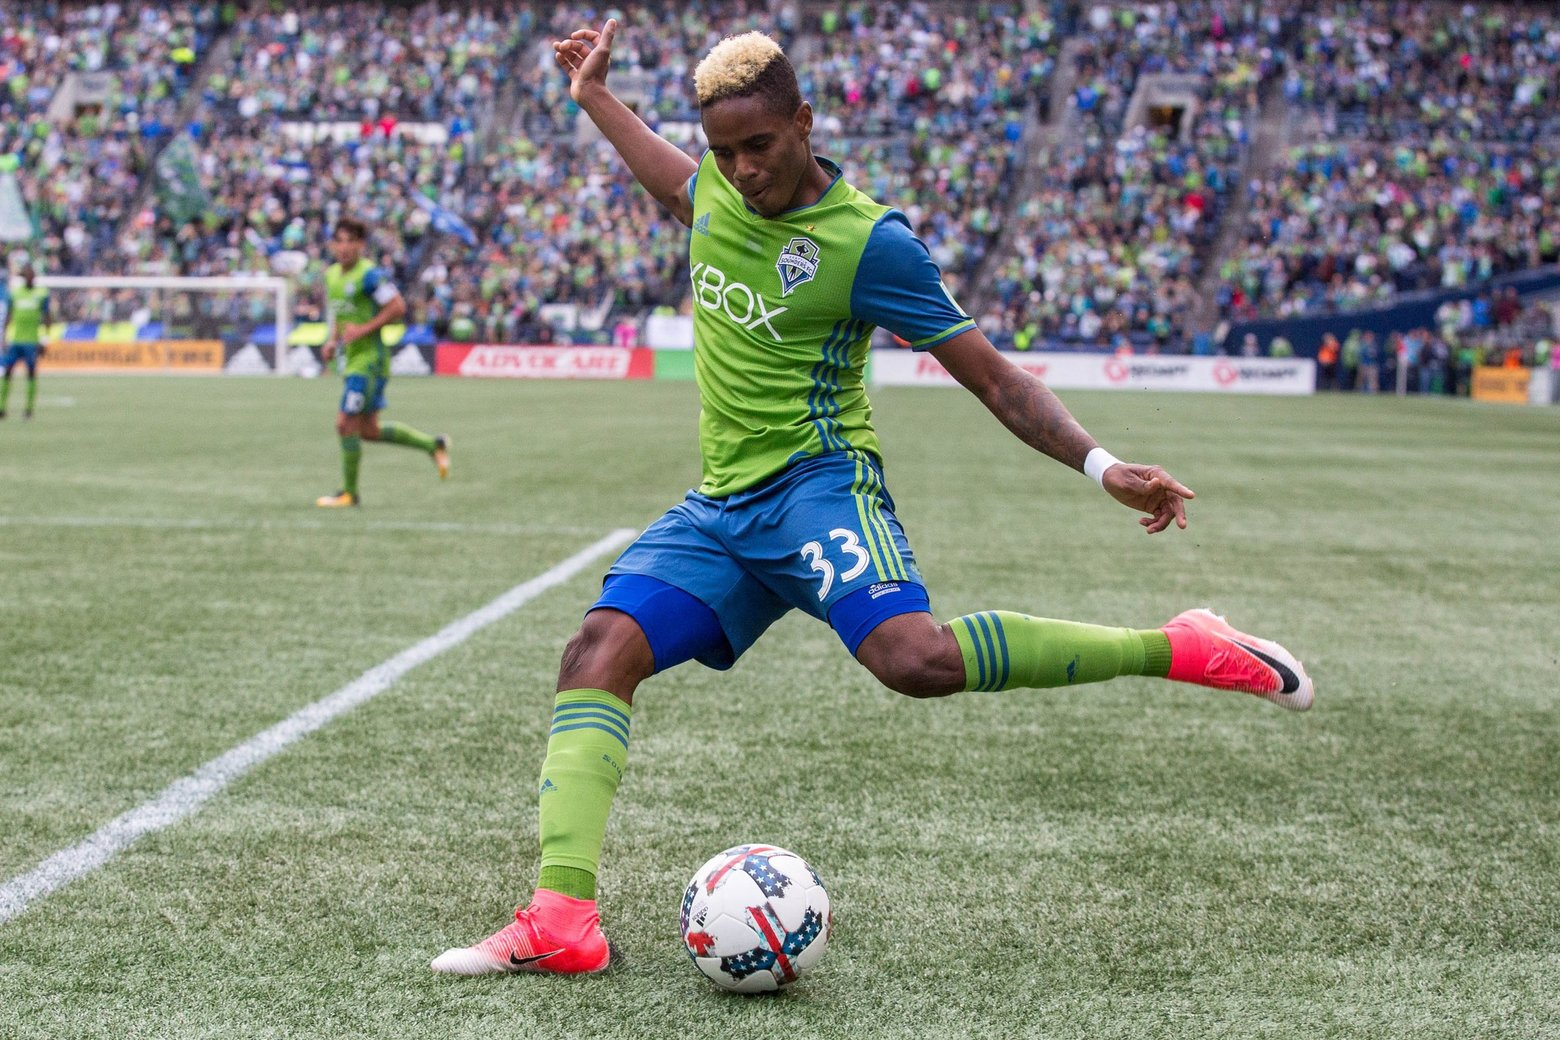 T&T international Joevin Jones played for 53 minutes of the Seattle Sounders 0-1 loss to the Portland Timbers on Wednesday